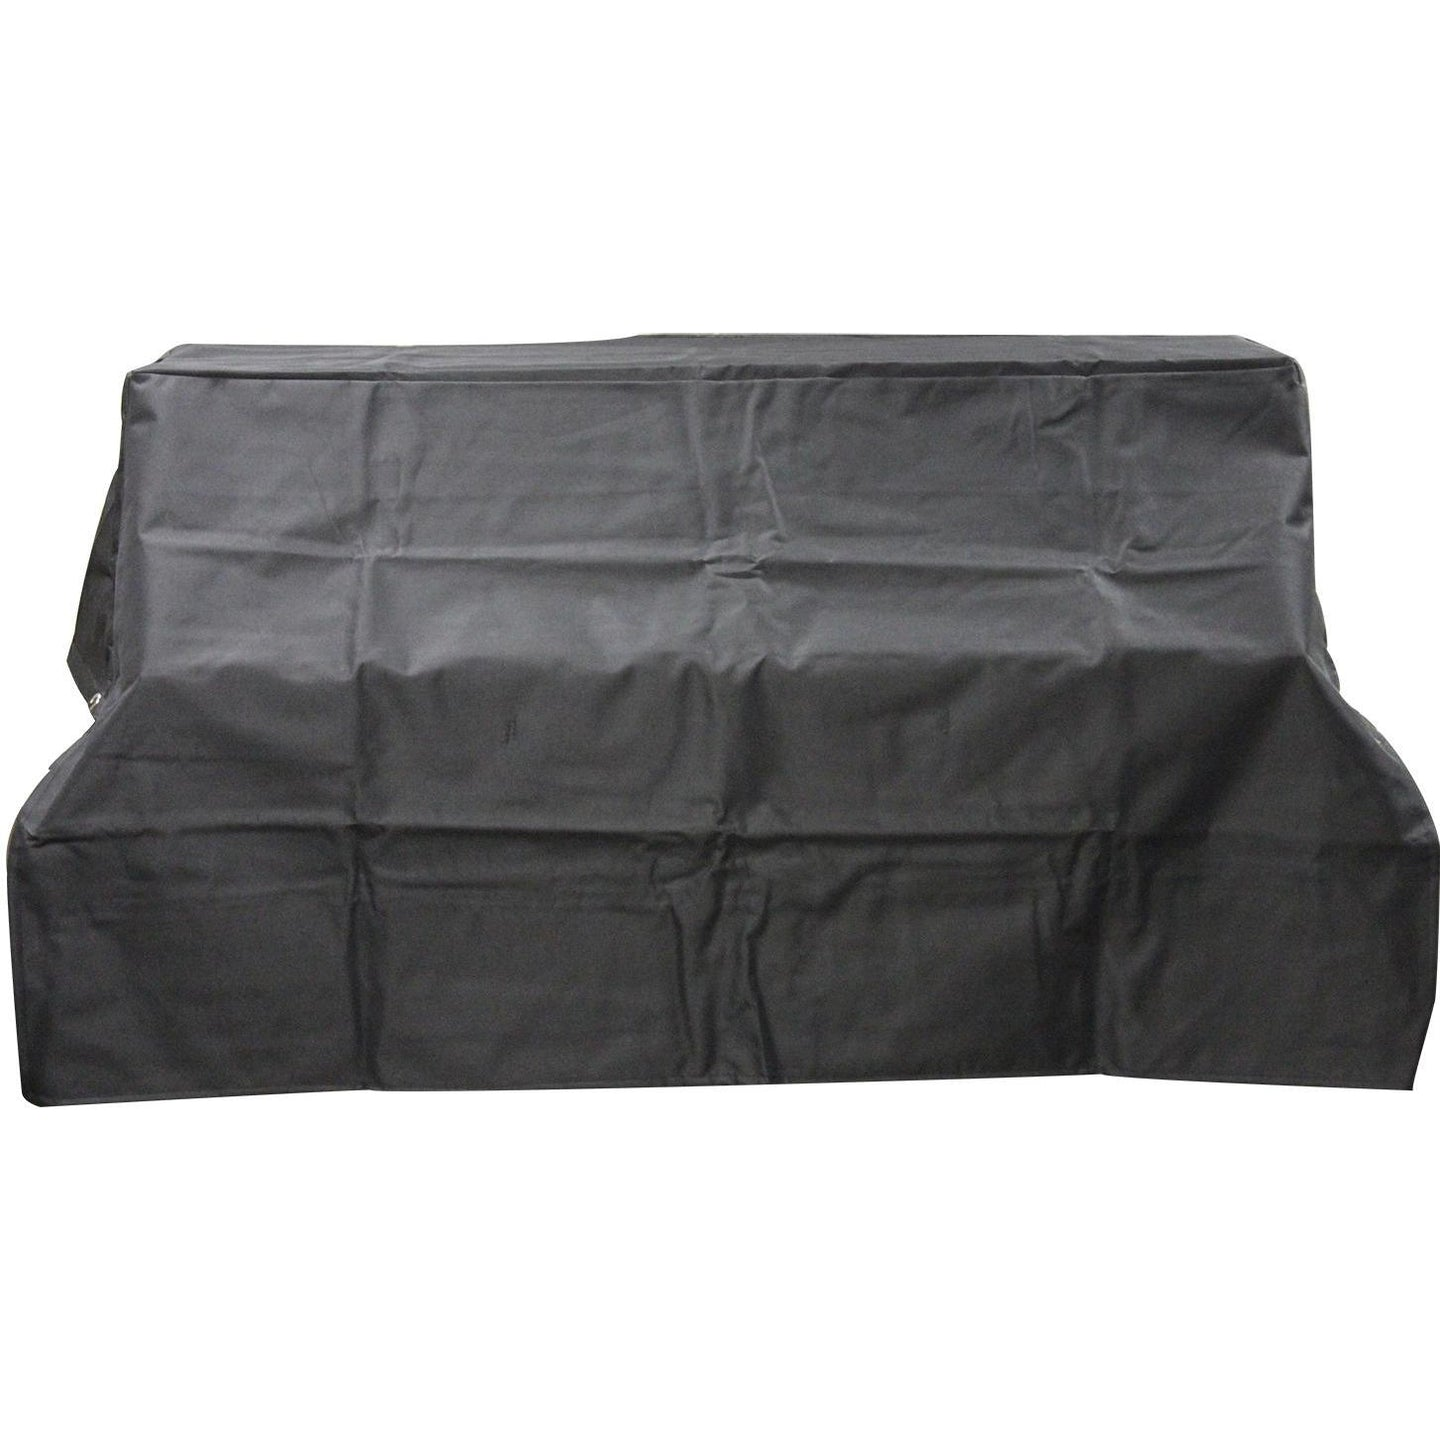 Summerset Deluxe Grill Cover For 44-Inch TRLD Built-In Gas Grills